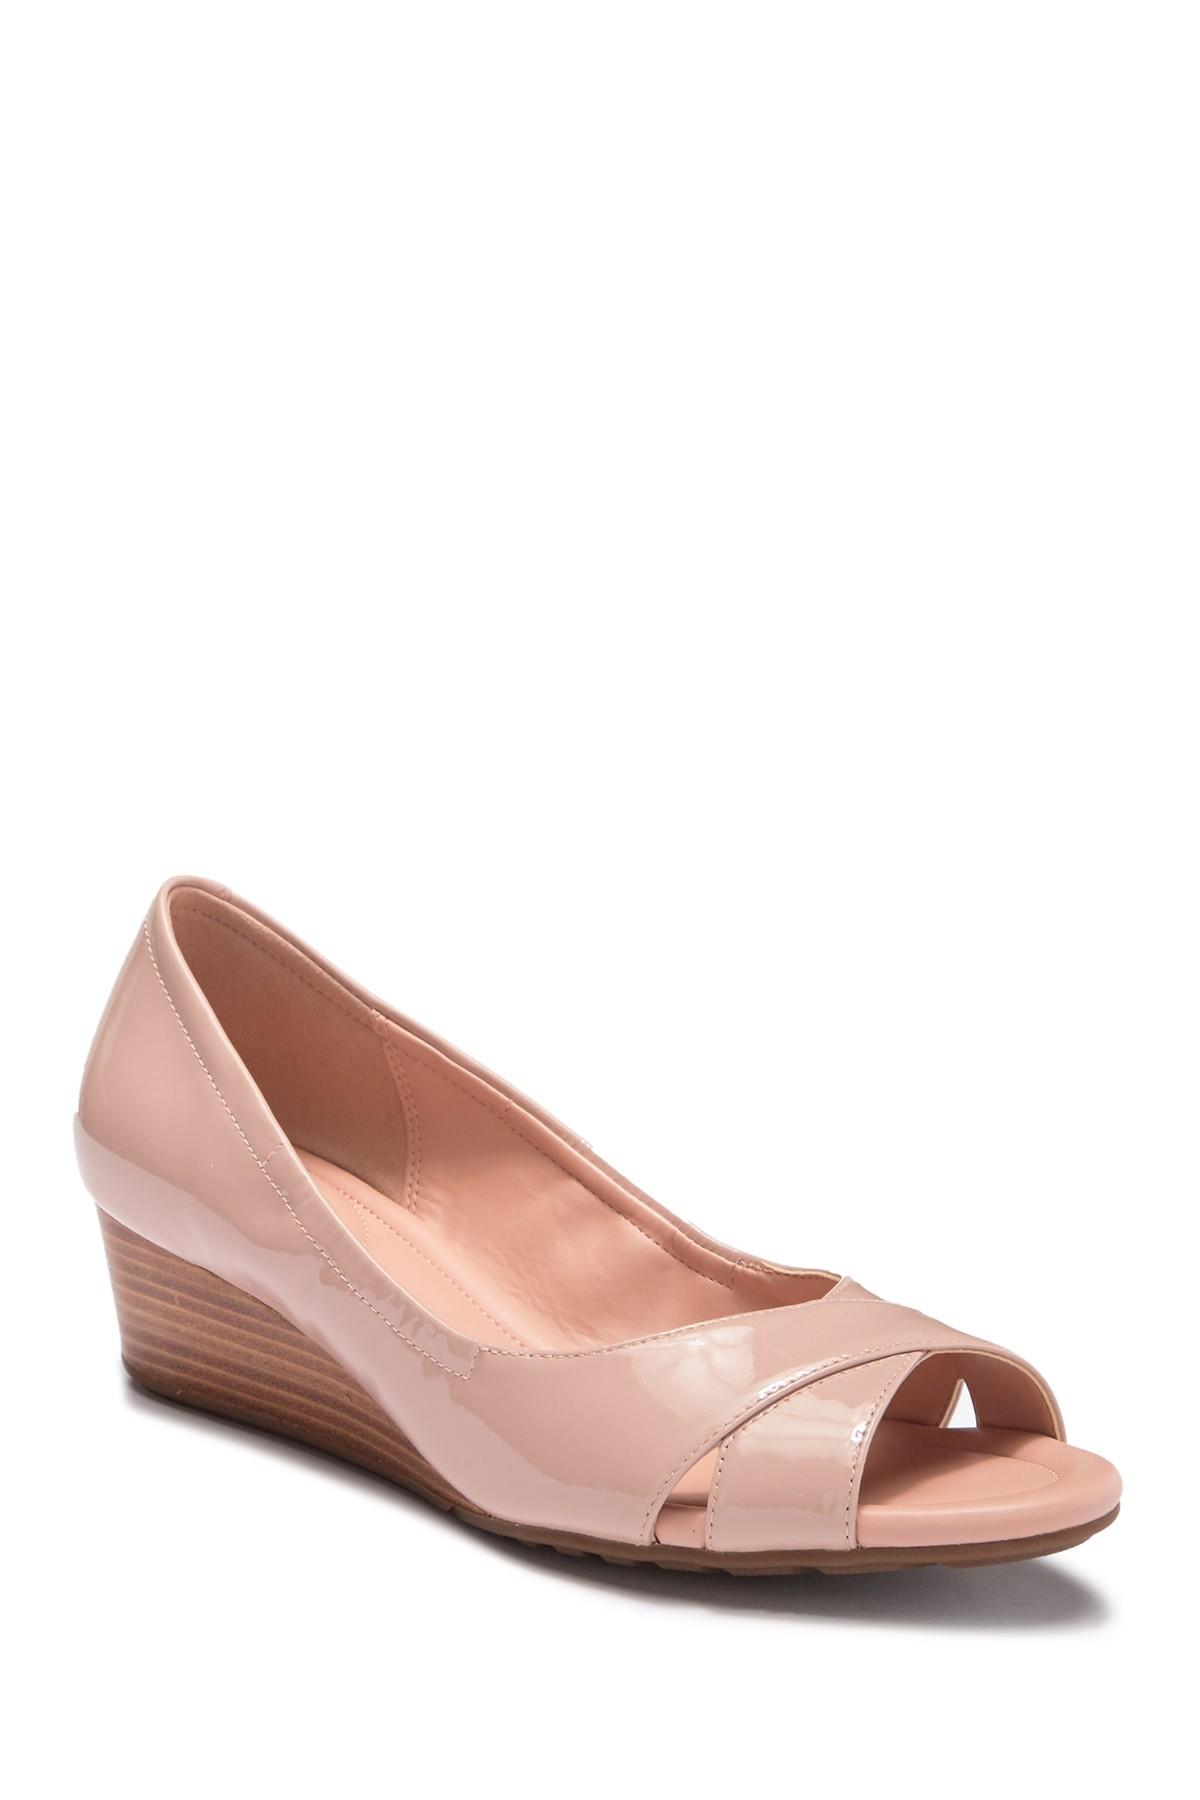 5f5b826b99e Cole Haan. Women s Pink Melina Crisscross Open Toe Wedge Pump.  180  100  From Nordstrom Rack